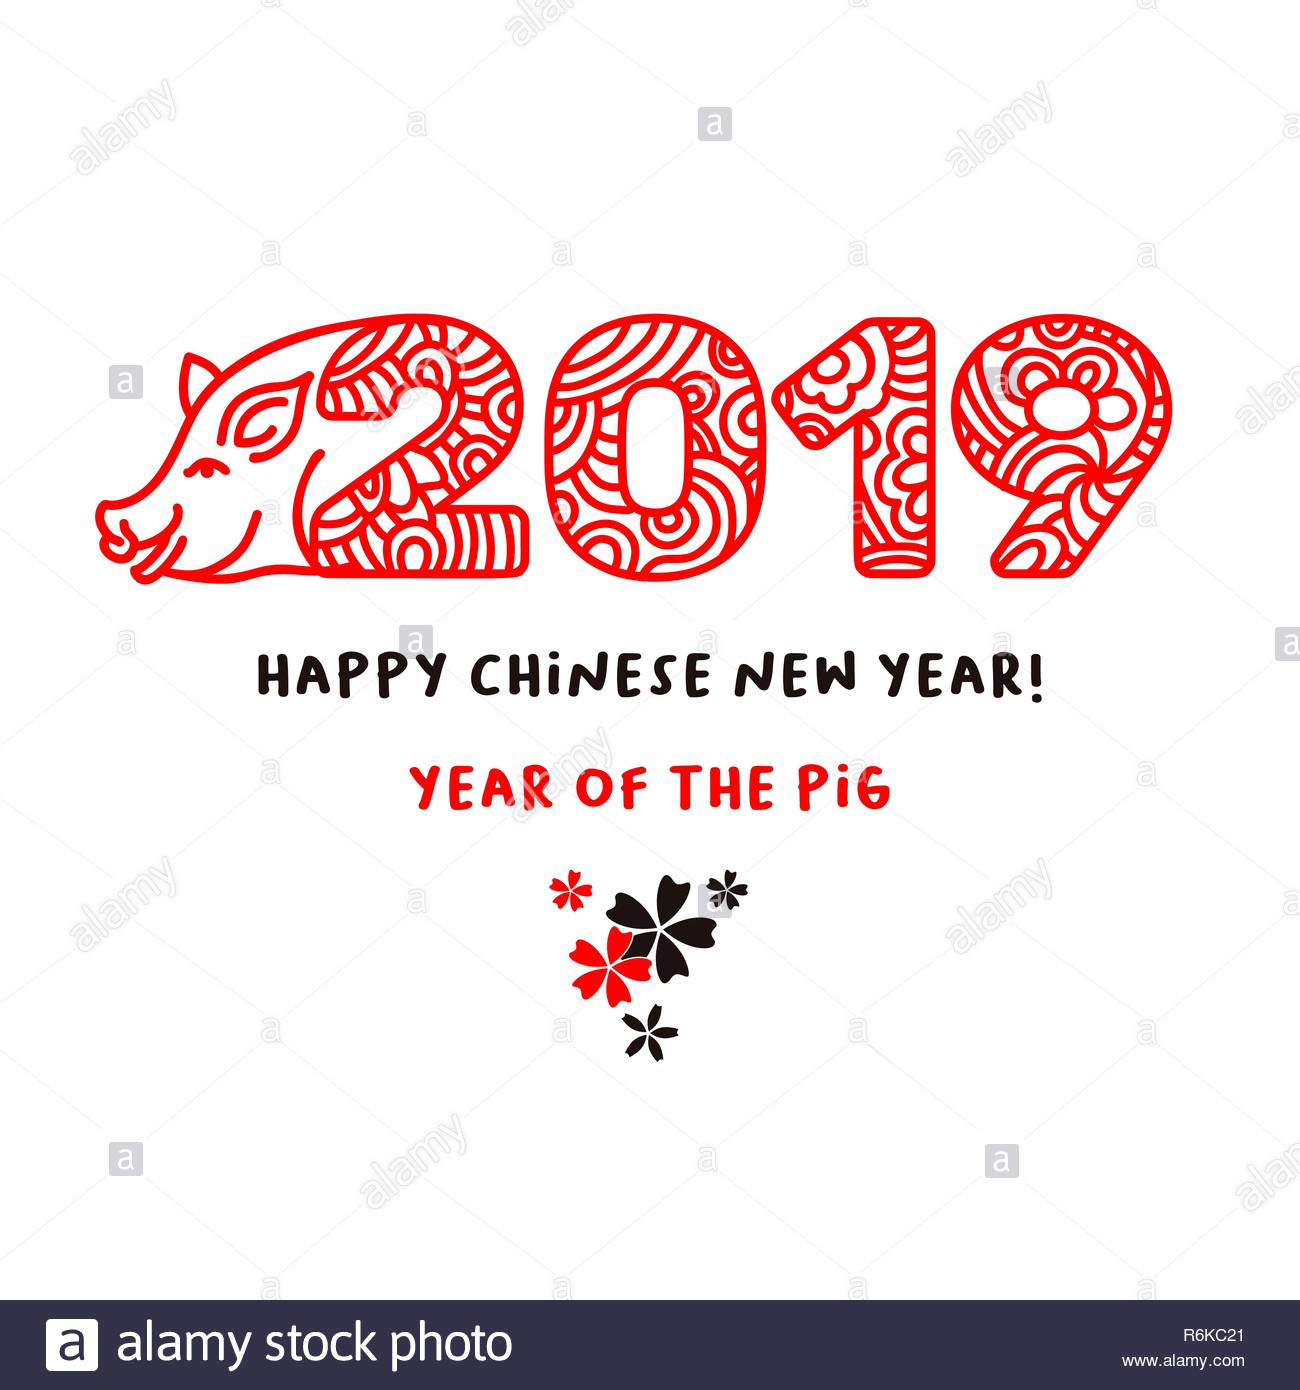 2019 Happy Chinese New Year hand drawn lettering vector illustration.